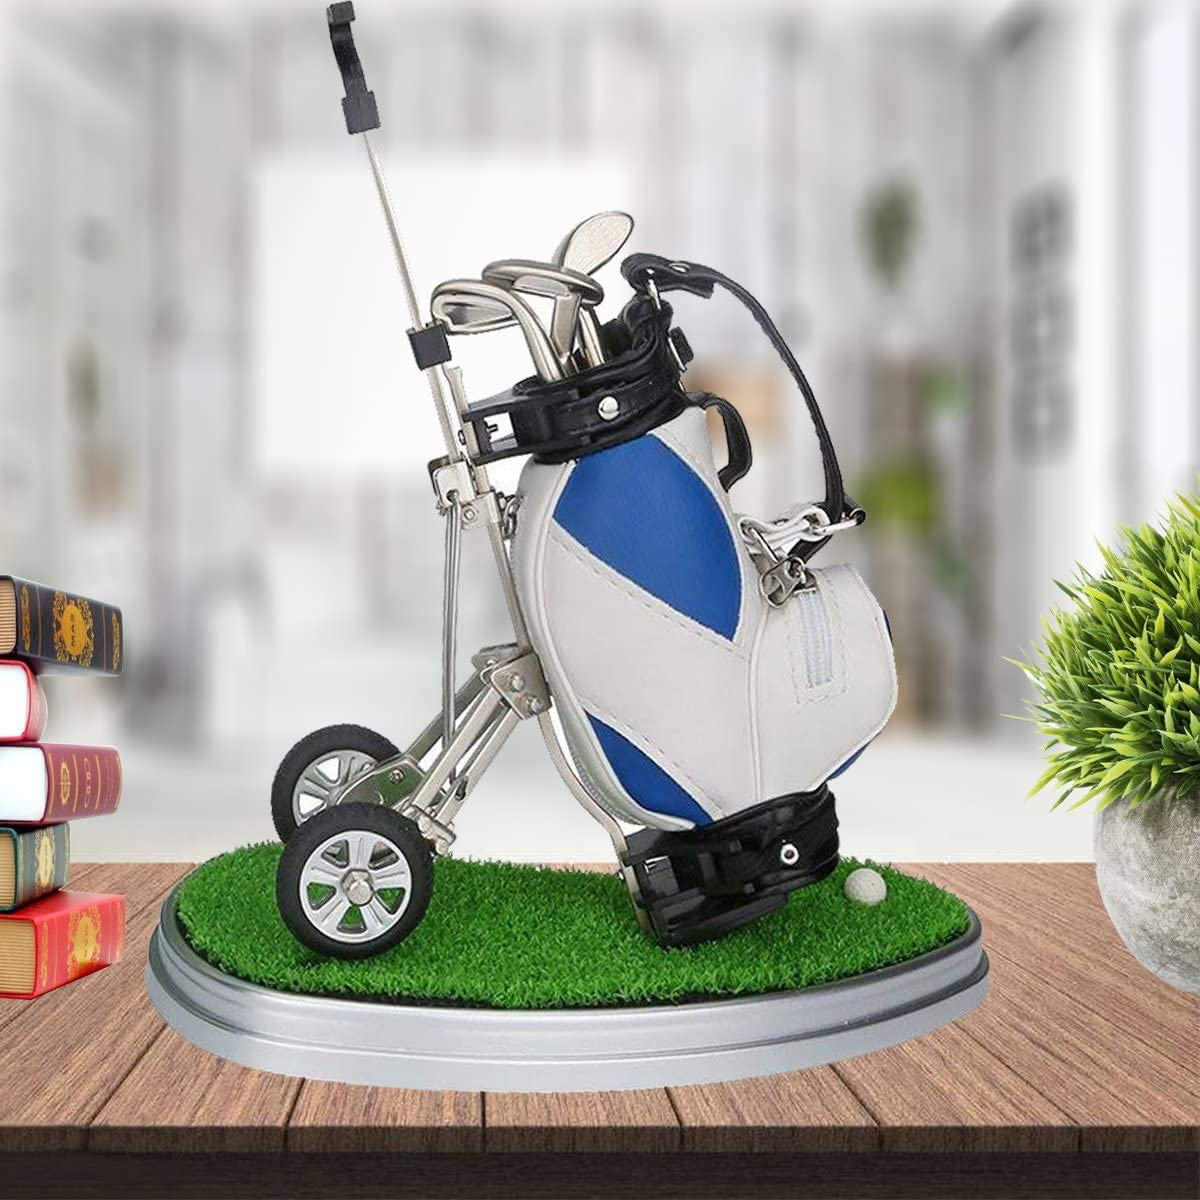 WLOOD Golf Pens with Golf Bag Holder,Novelty Gifts with 3 Pieces Aluminum Pen Office Desk Golf Bag Pencil Holder for Men Fathers Day,Golf Gifts for Golfer Fans Coworker (Blue and White)